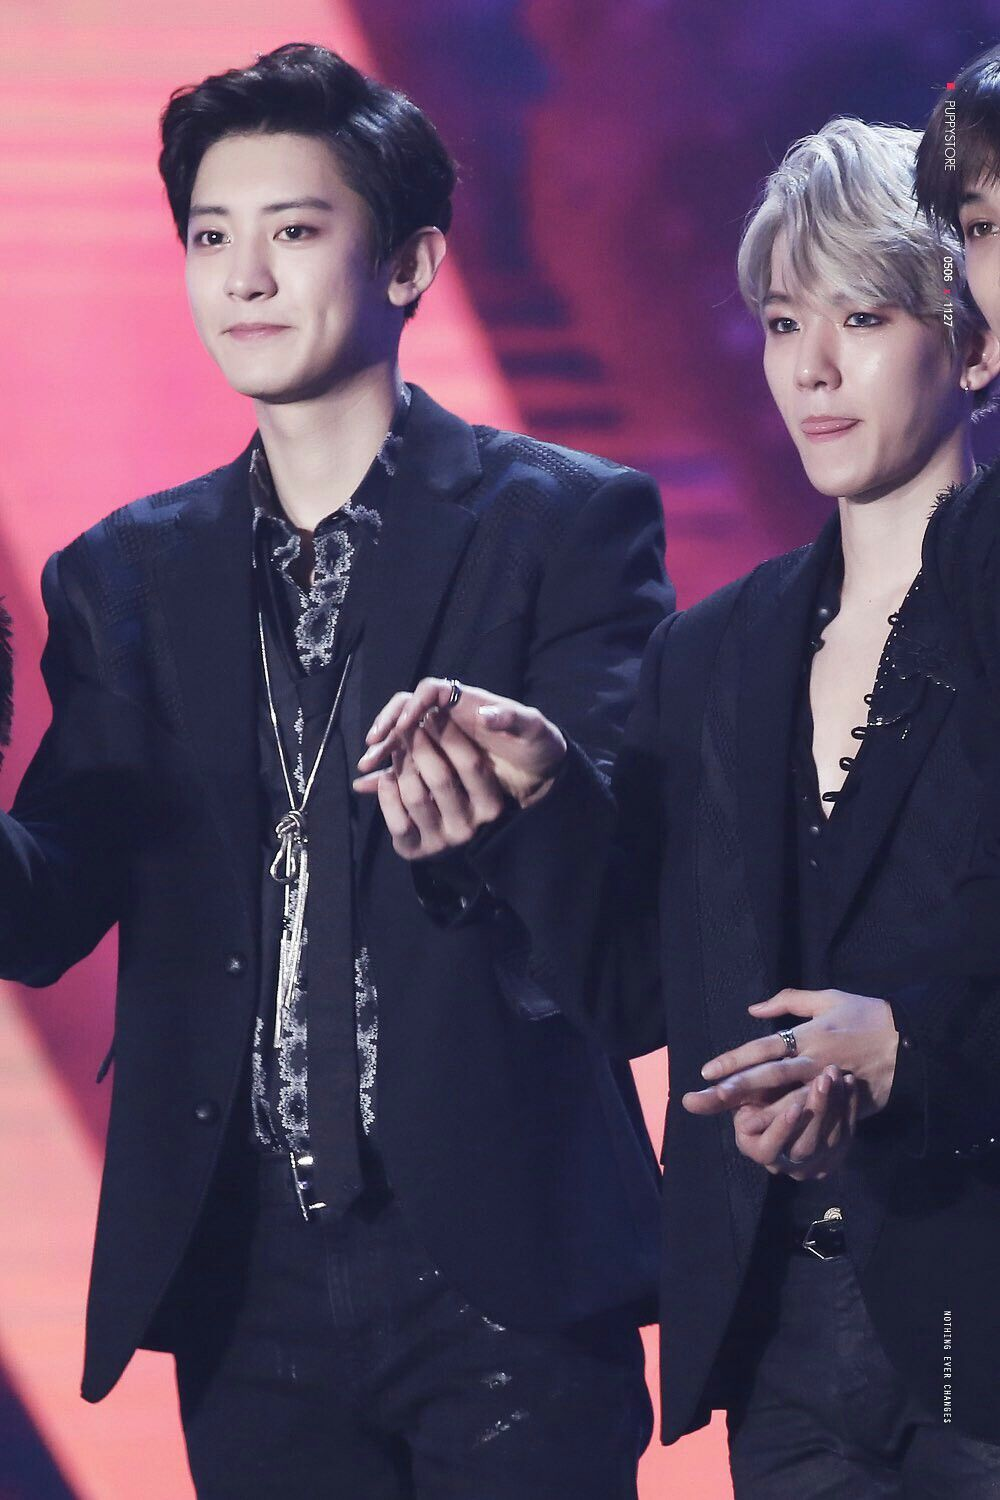 [171202] #EXO #BAEKHYUN #CHANYEOL @MELON music Awards ...